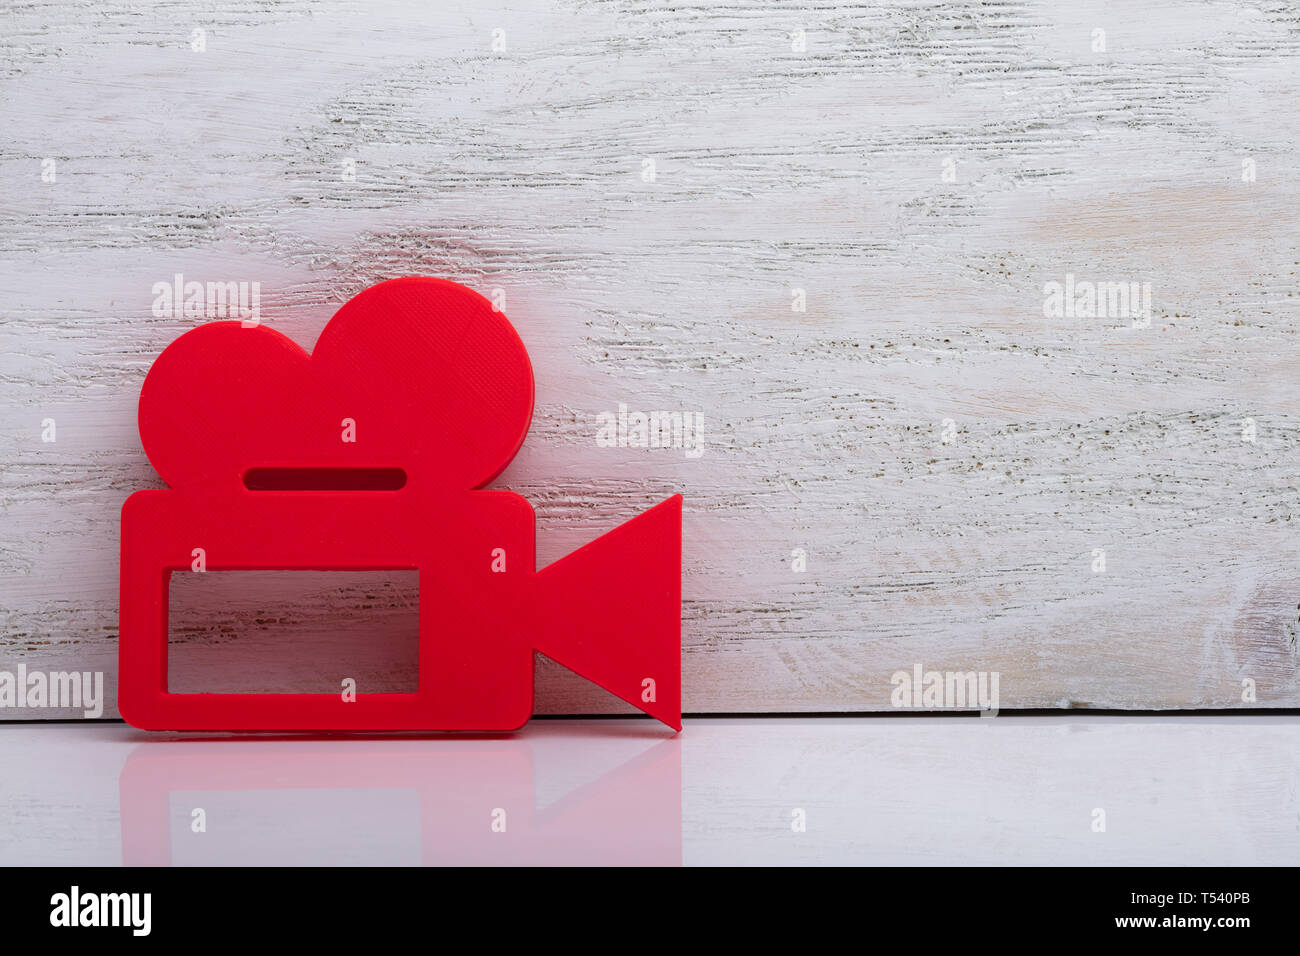 Close-up Of Red Video Camera Sign Over White Desk - Stock Image